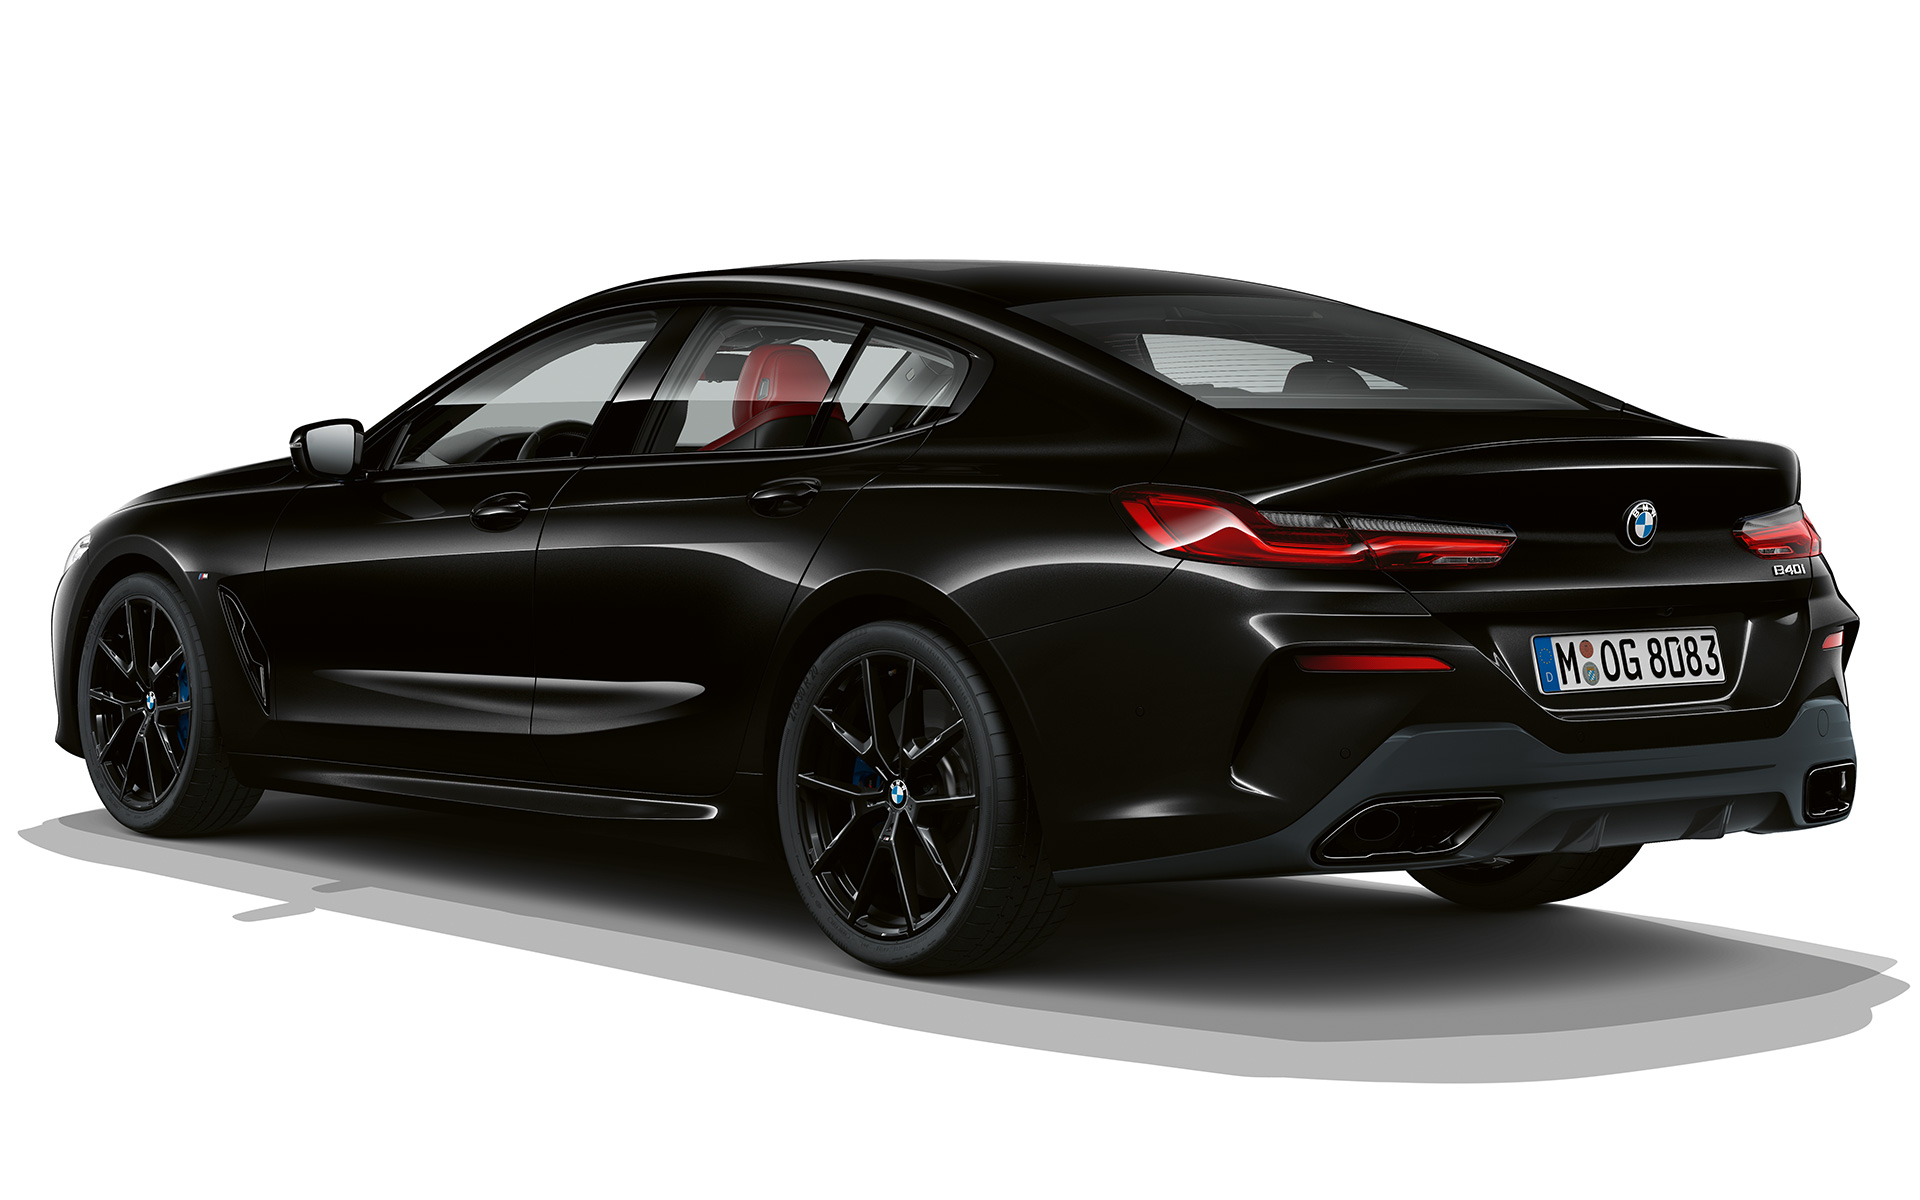 BMW 8 Series Gran Coupé, Dark Seduction three quarter rear shot